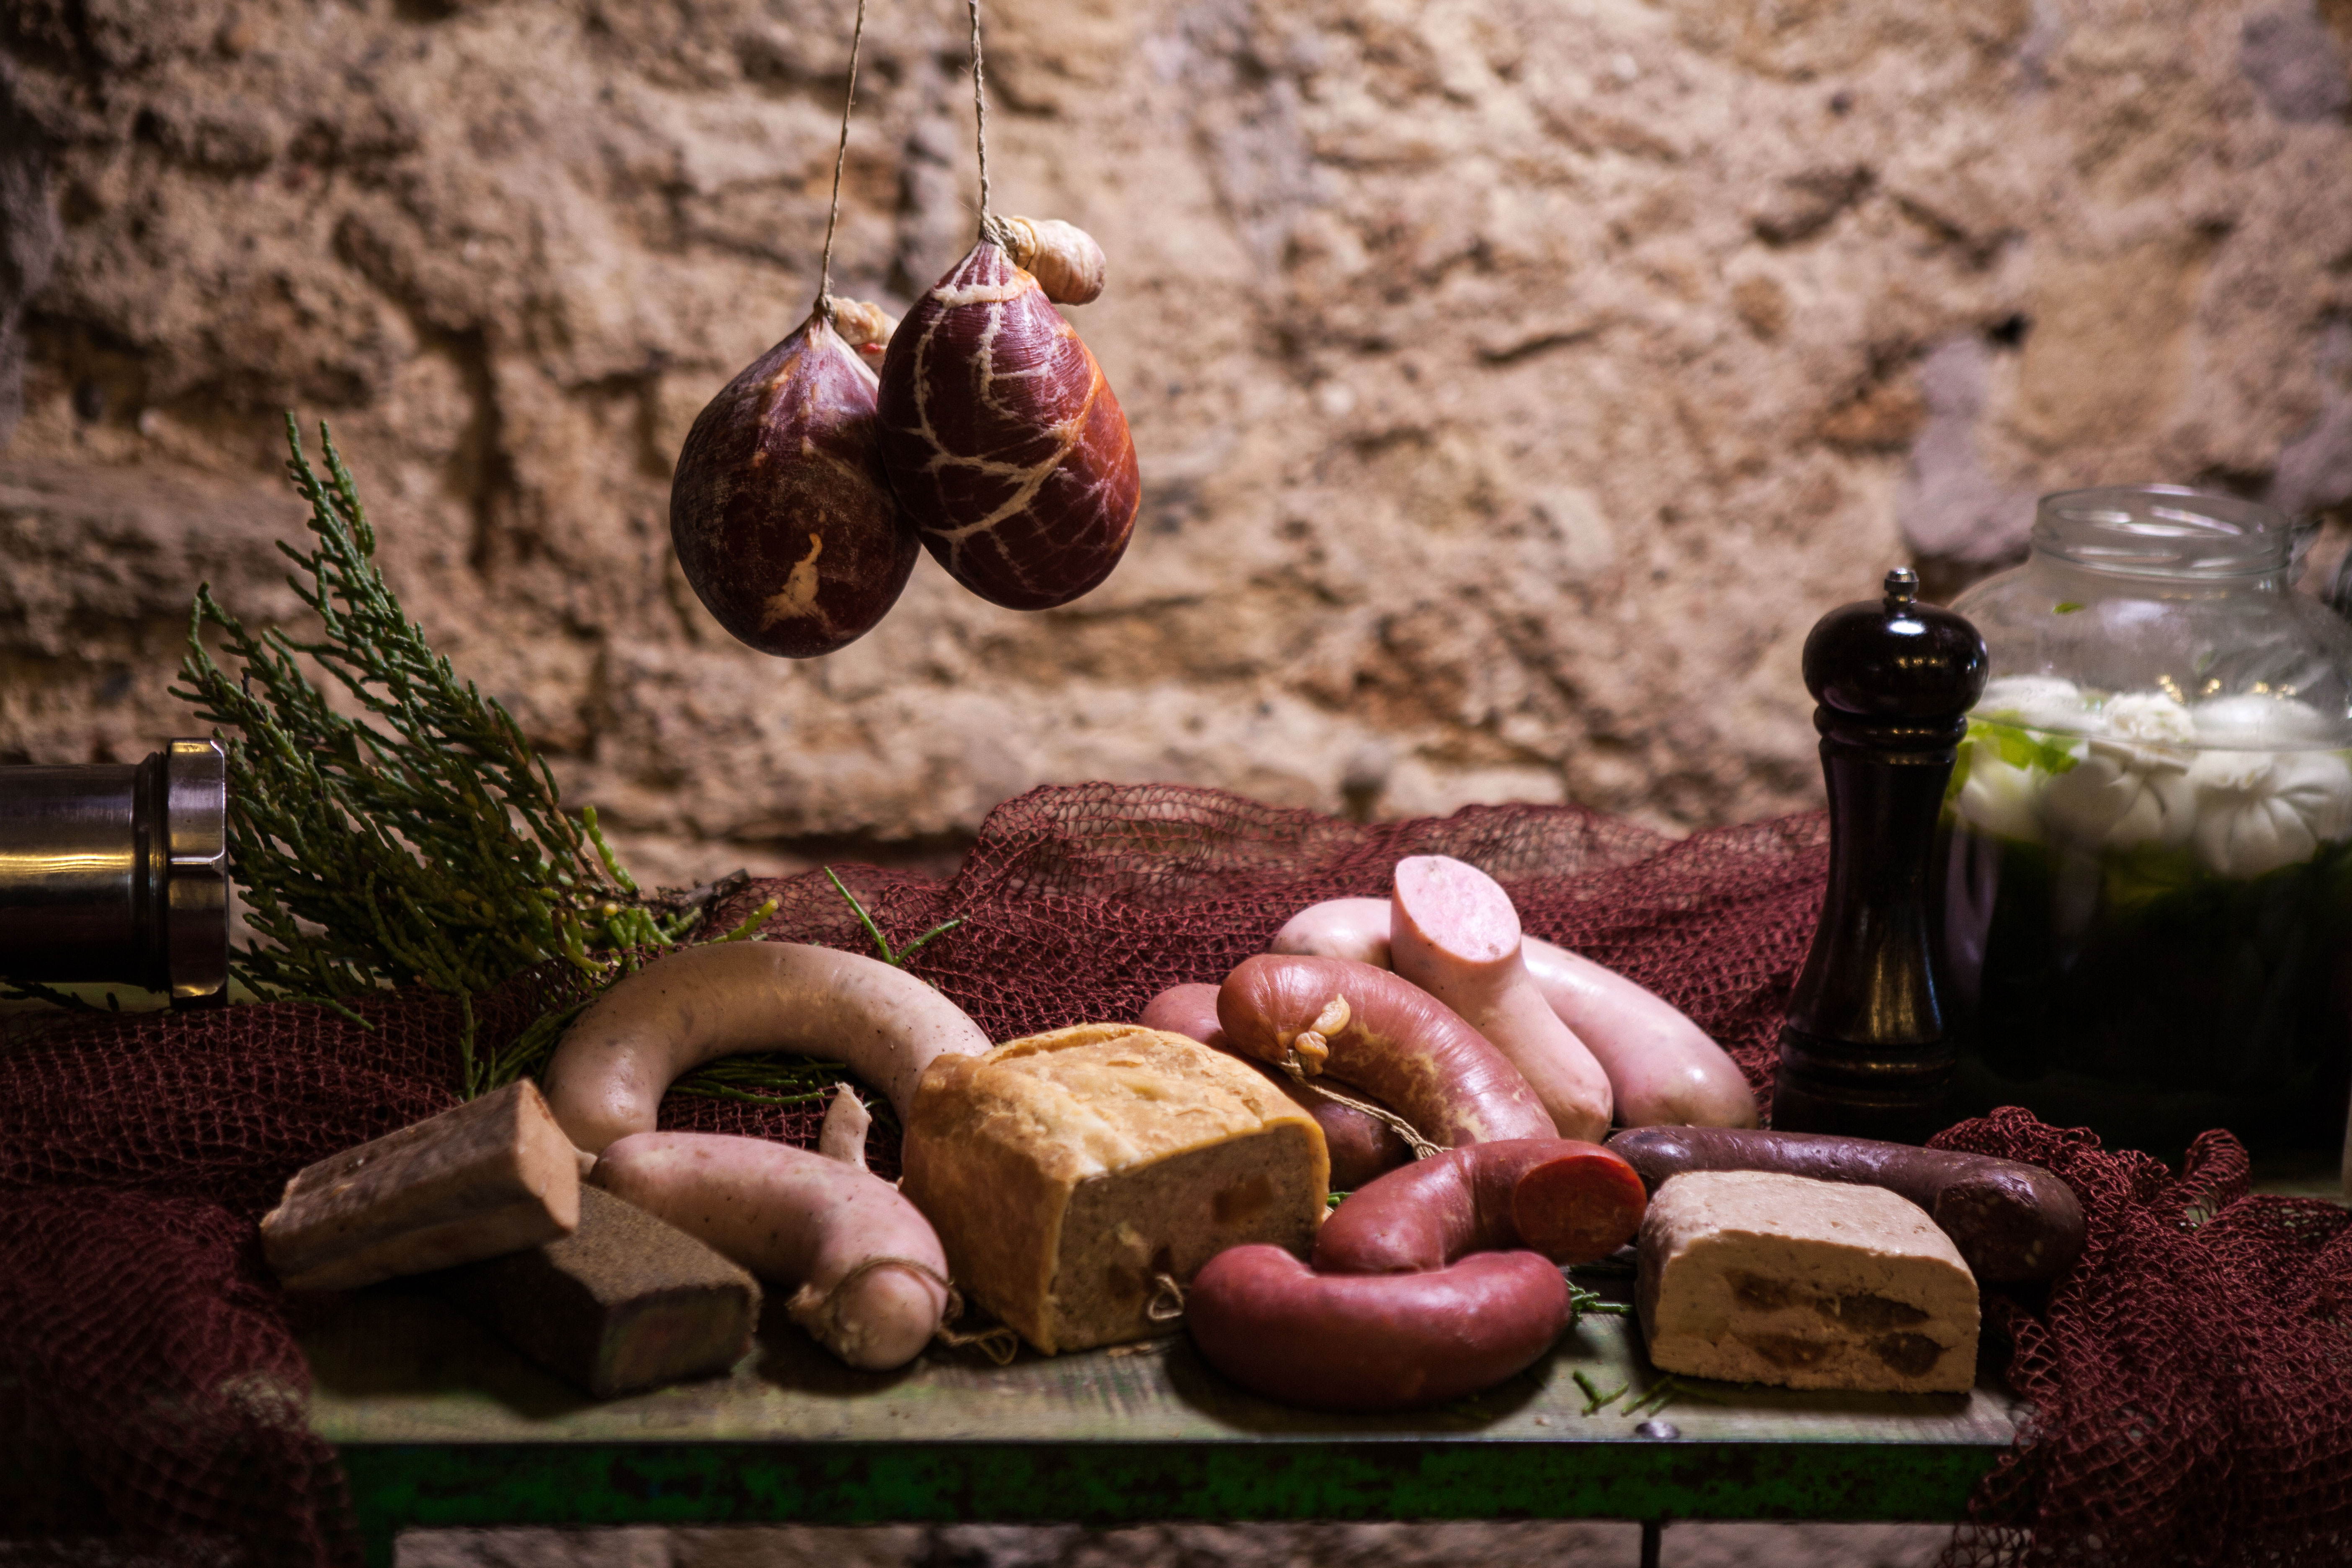 02_Saucisses-de-poisson_21_©SARAHARNOULD:PANTHALASSA